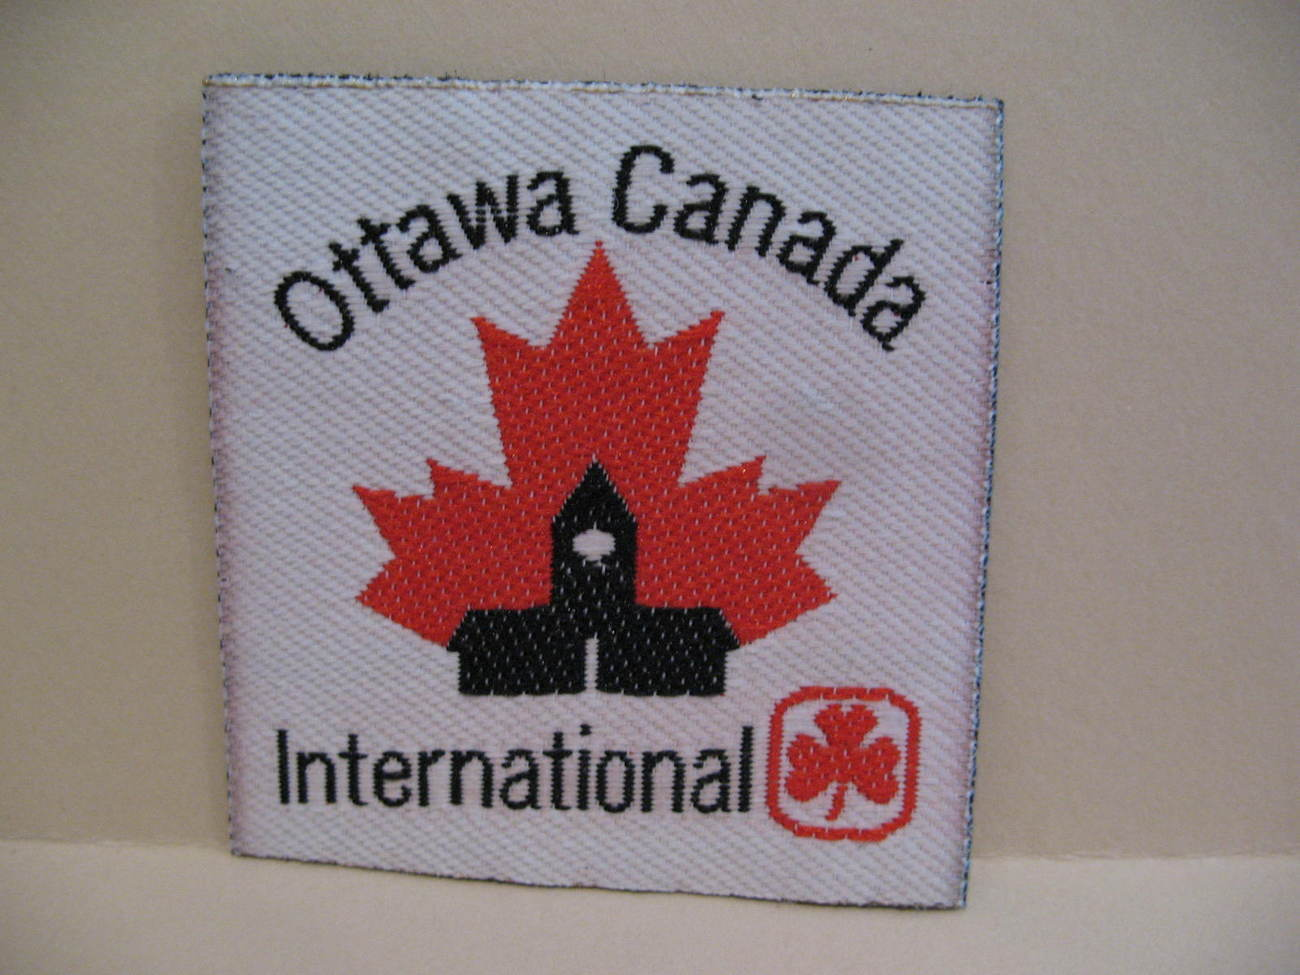 Ottawa Canada International Girl Guides Patch Badge Crest